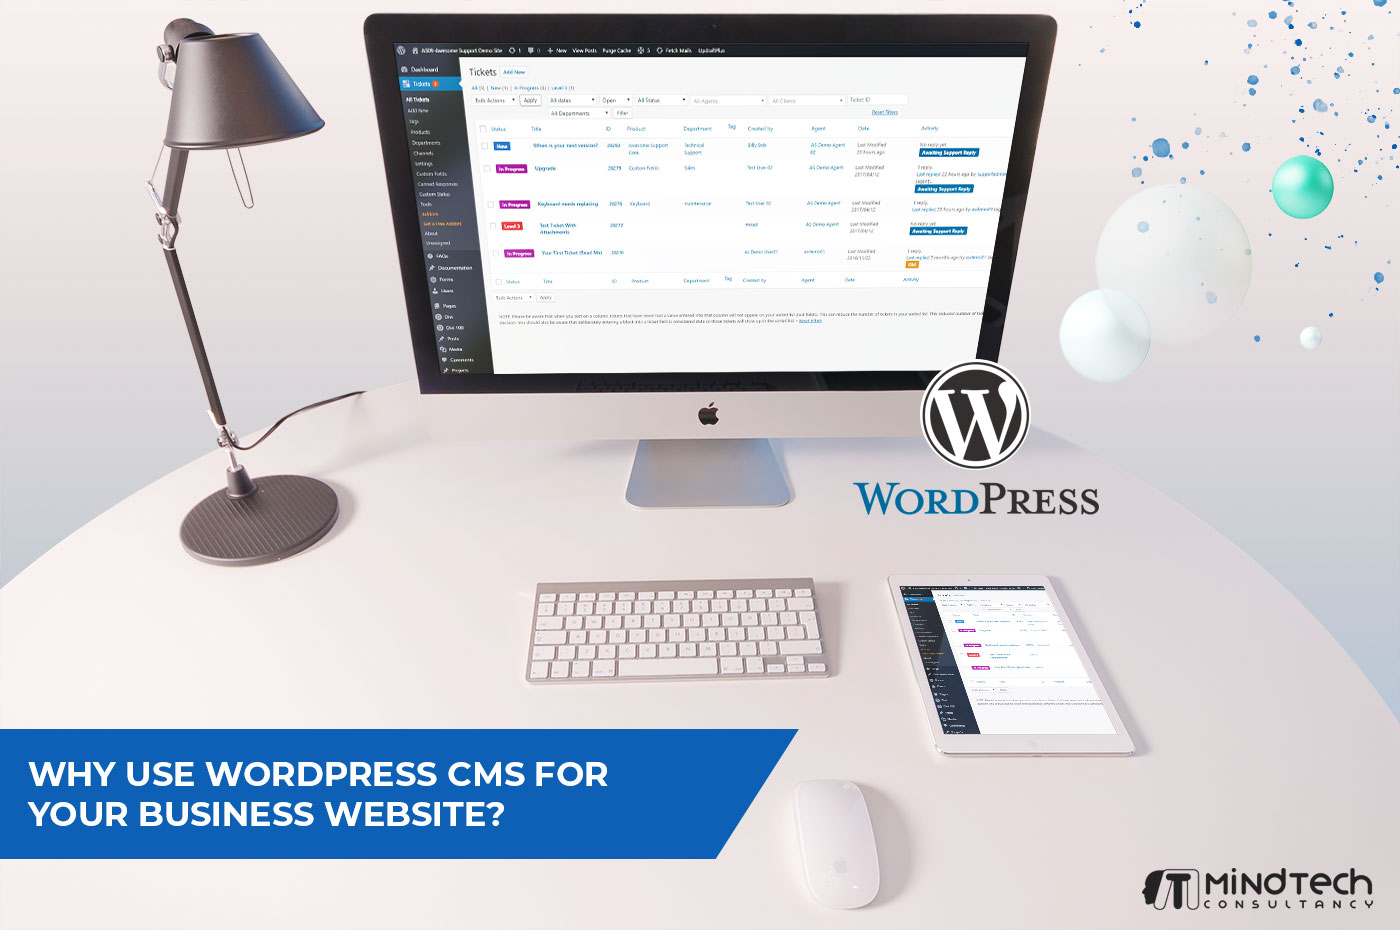 Why Use WordPress CMS